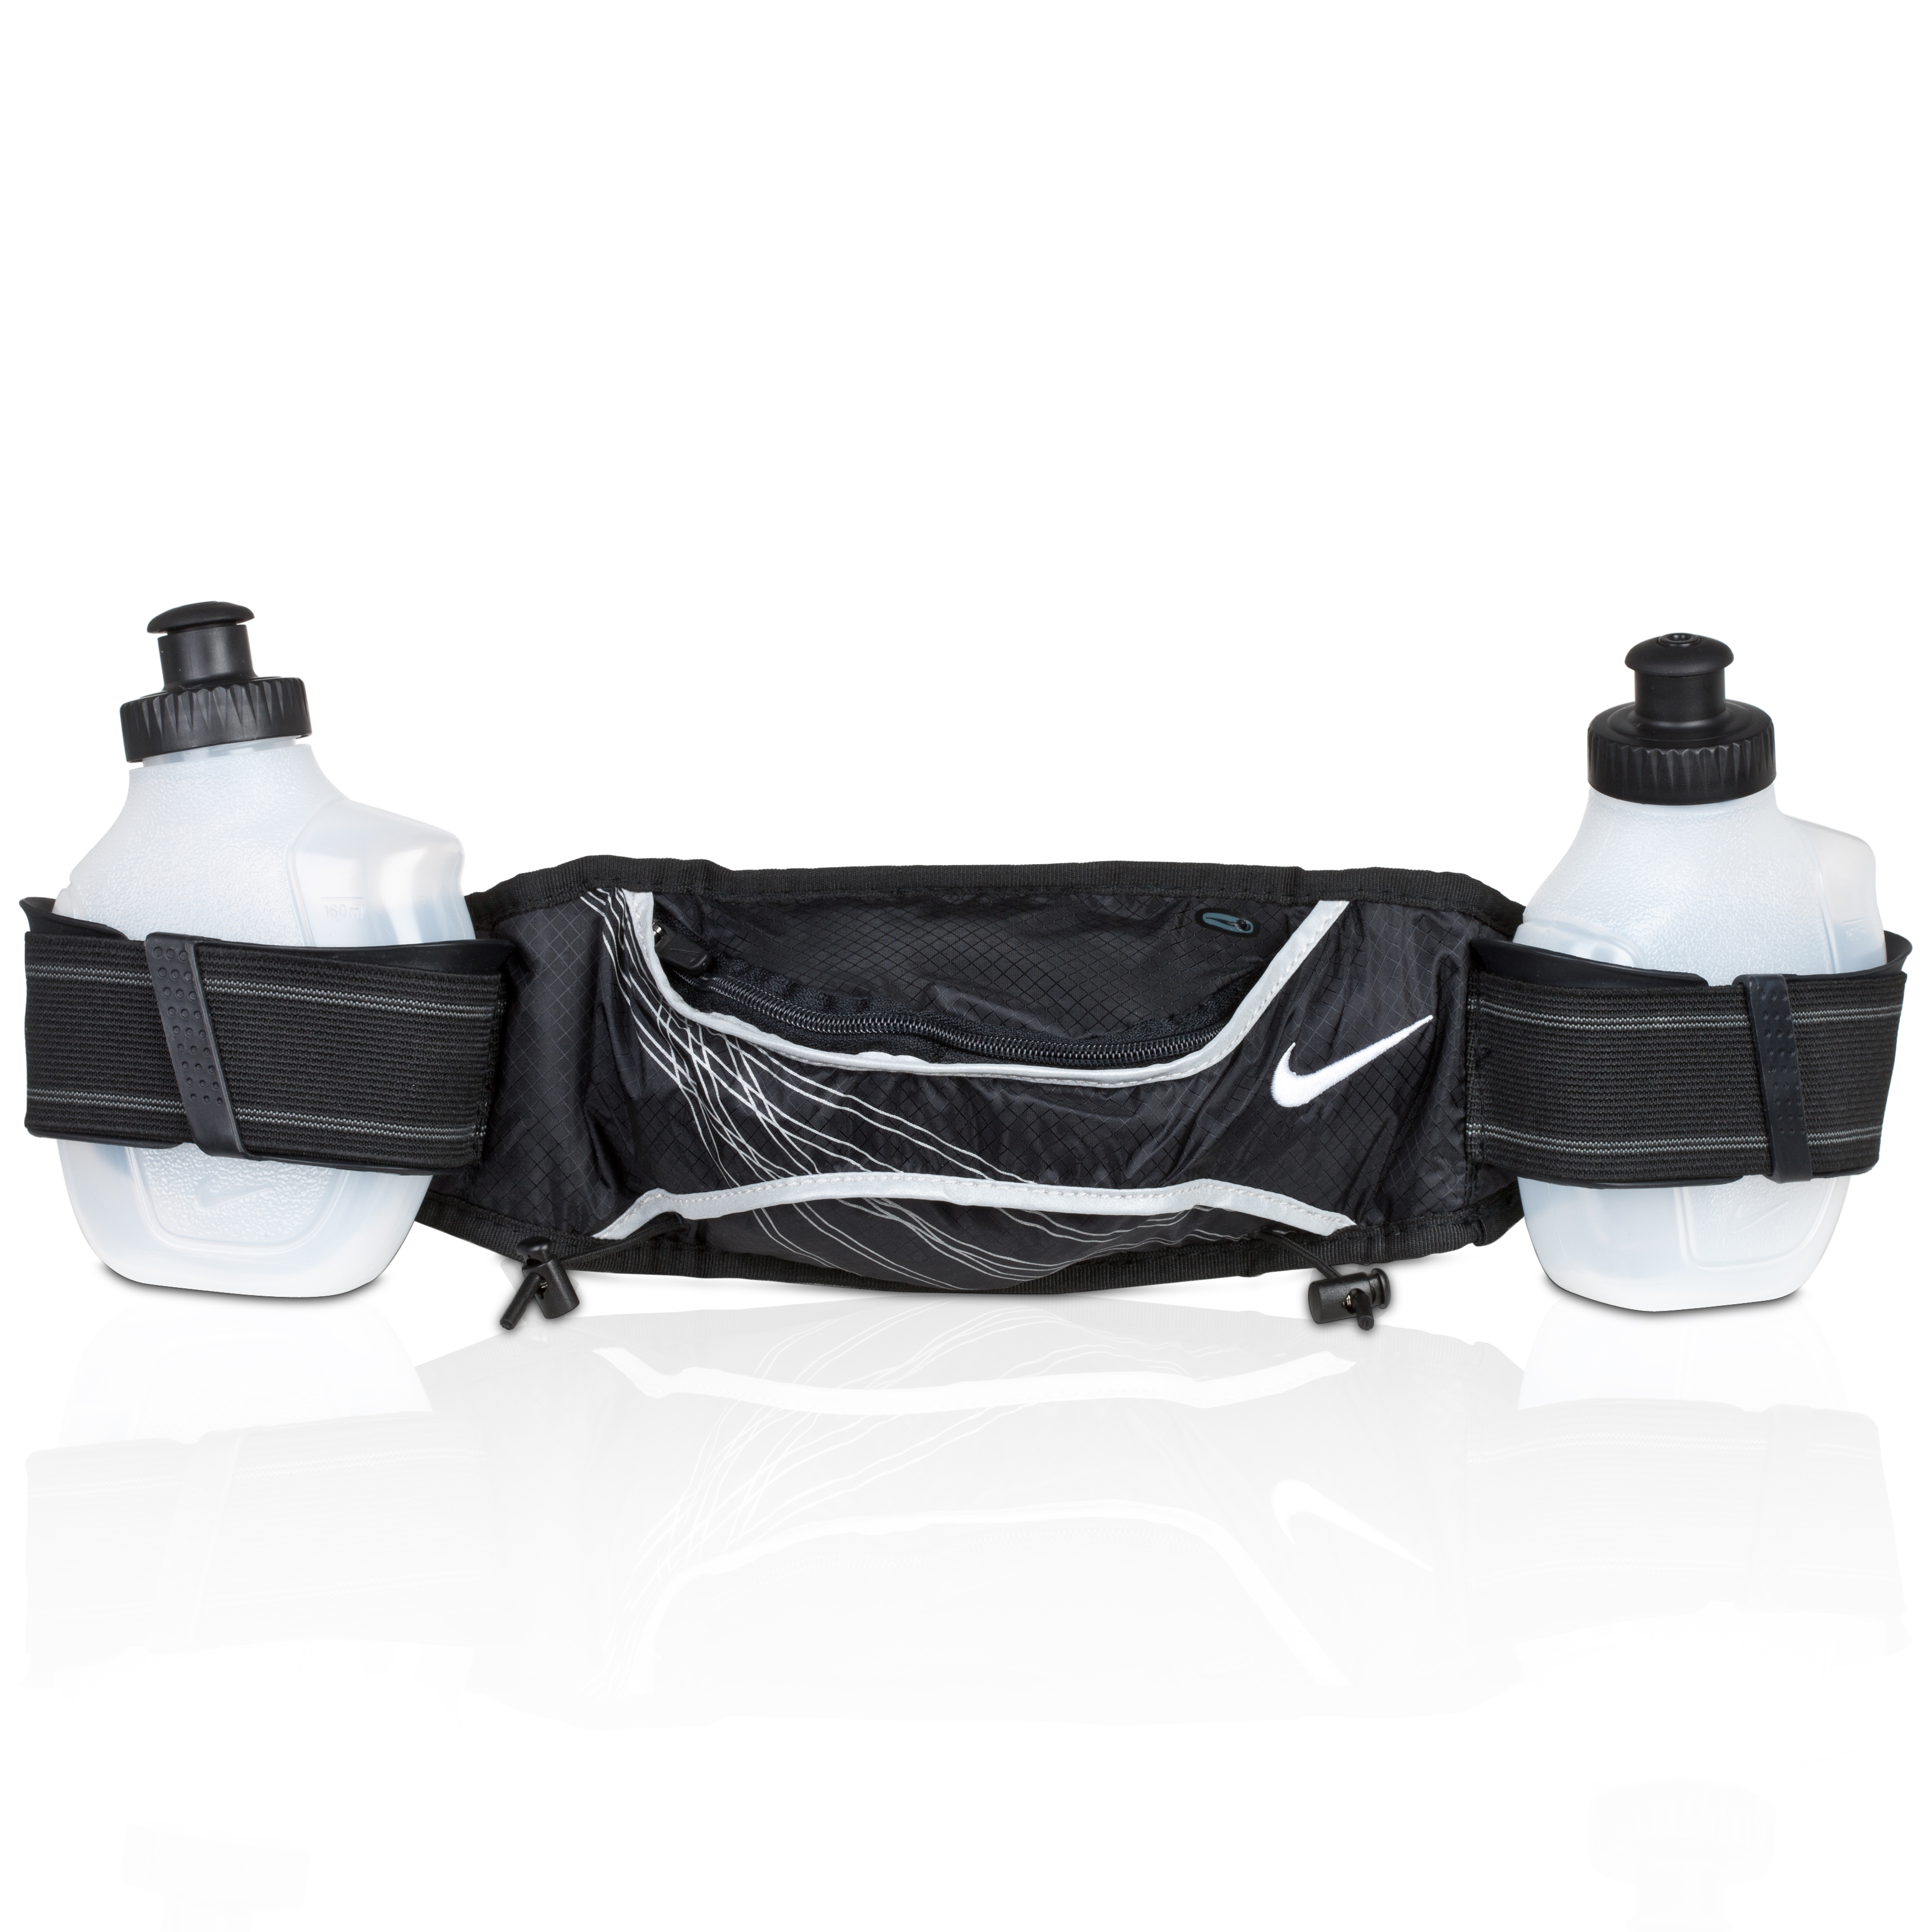 Nike Lightweight Hydration Belt 2 Bottle - Black/White